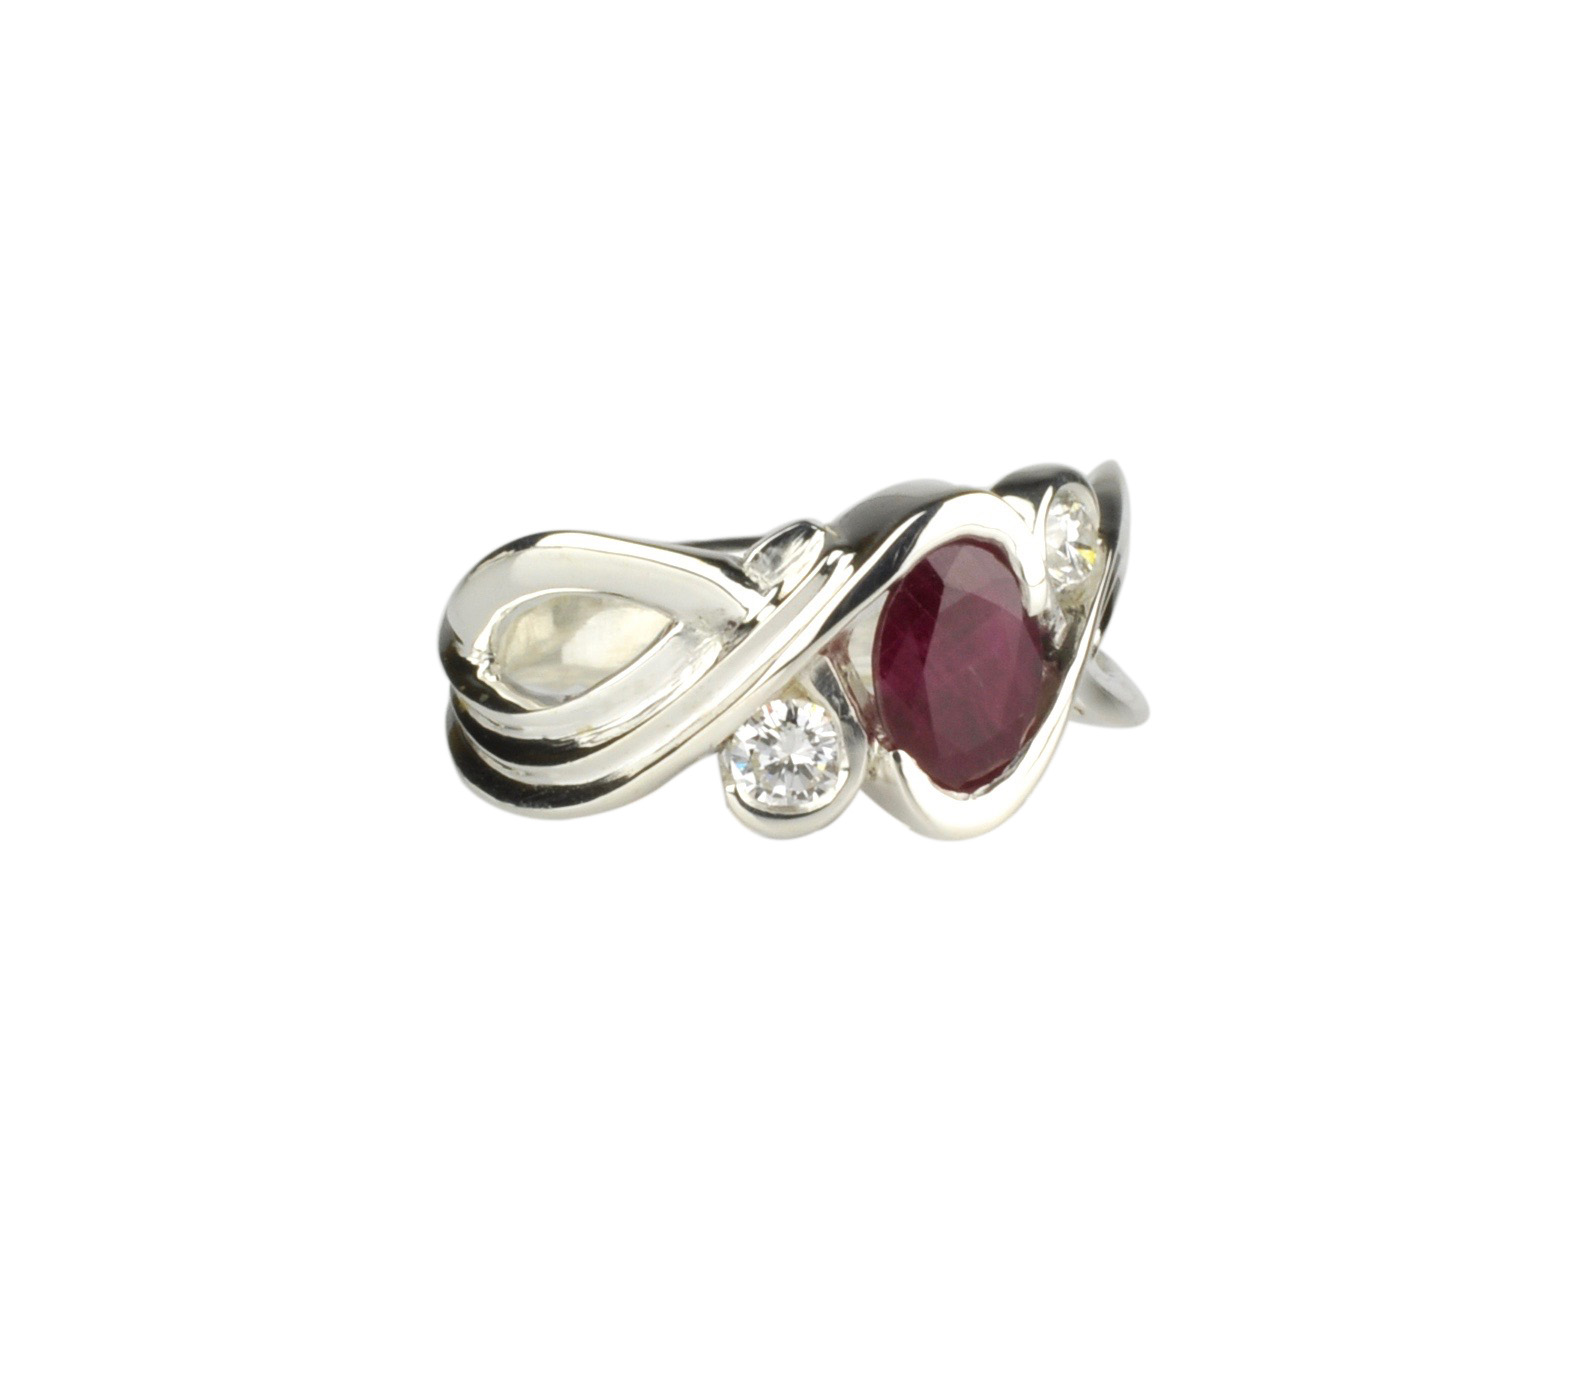 Sterling Silver Ring with Ruby and Diamonds